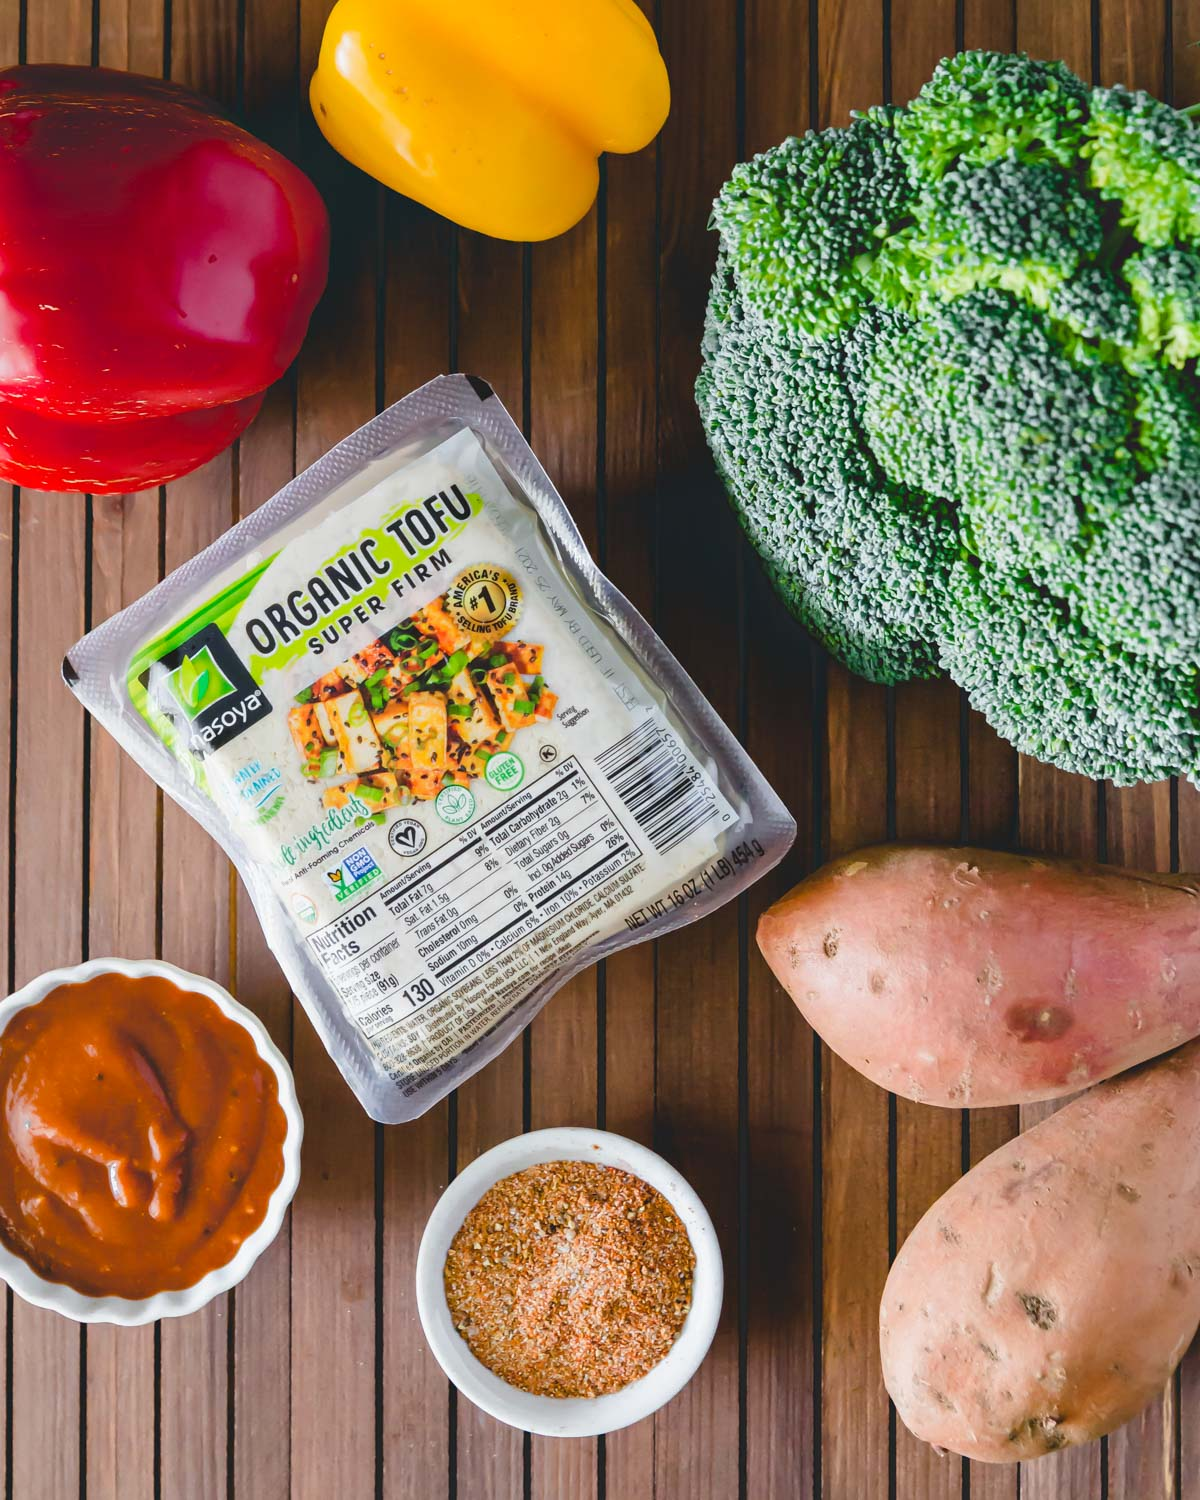 Ingredients to make sheet pan BBQ tofu in the oven: BBQ sauce, organic tofu, broccoli, sweet potato, bell peppers and a dry spice rub.